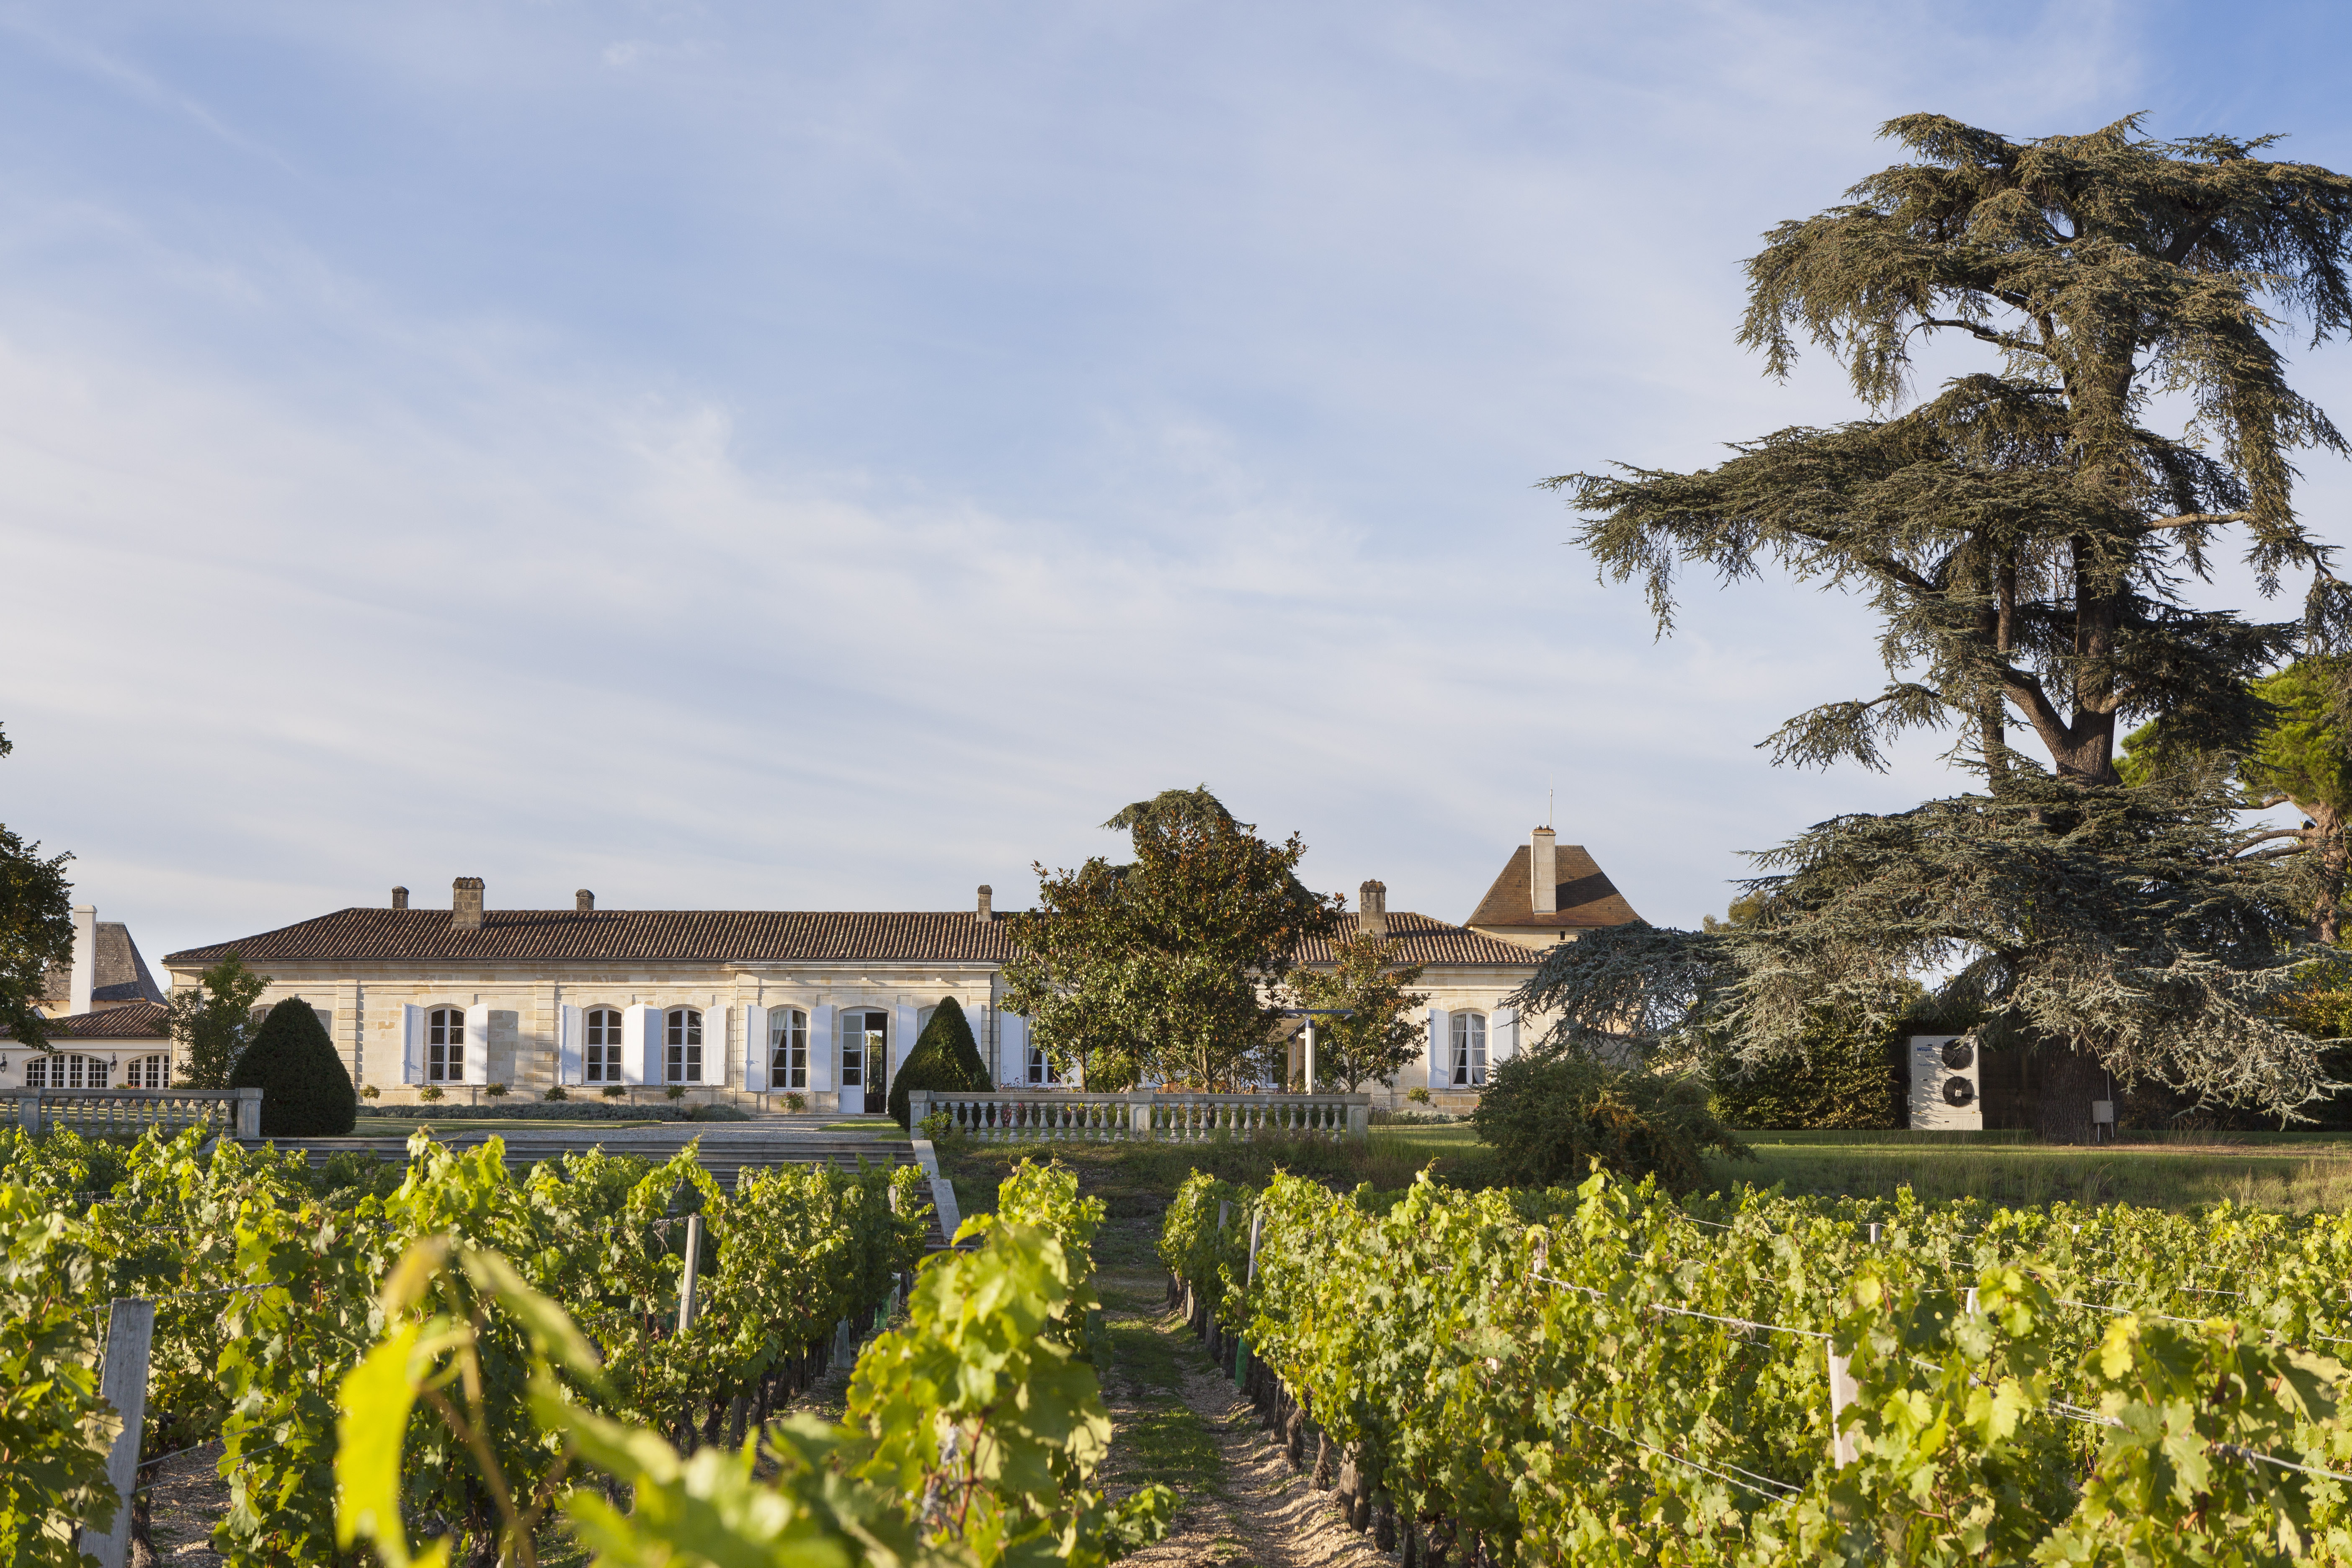 An 18th Century French chateau with vineyards in the front.